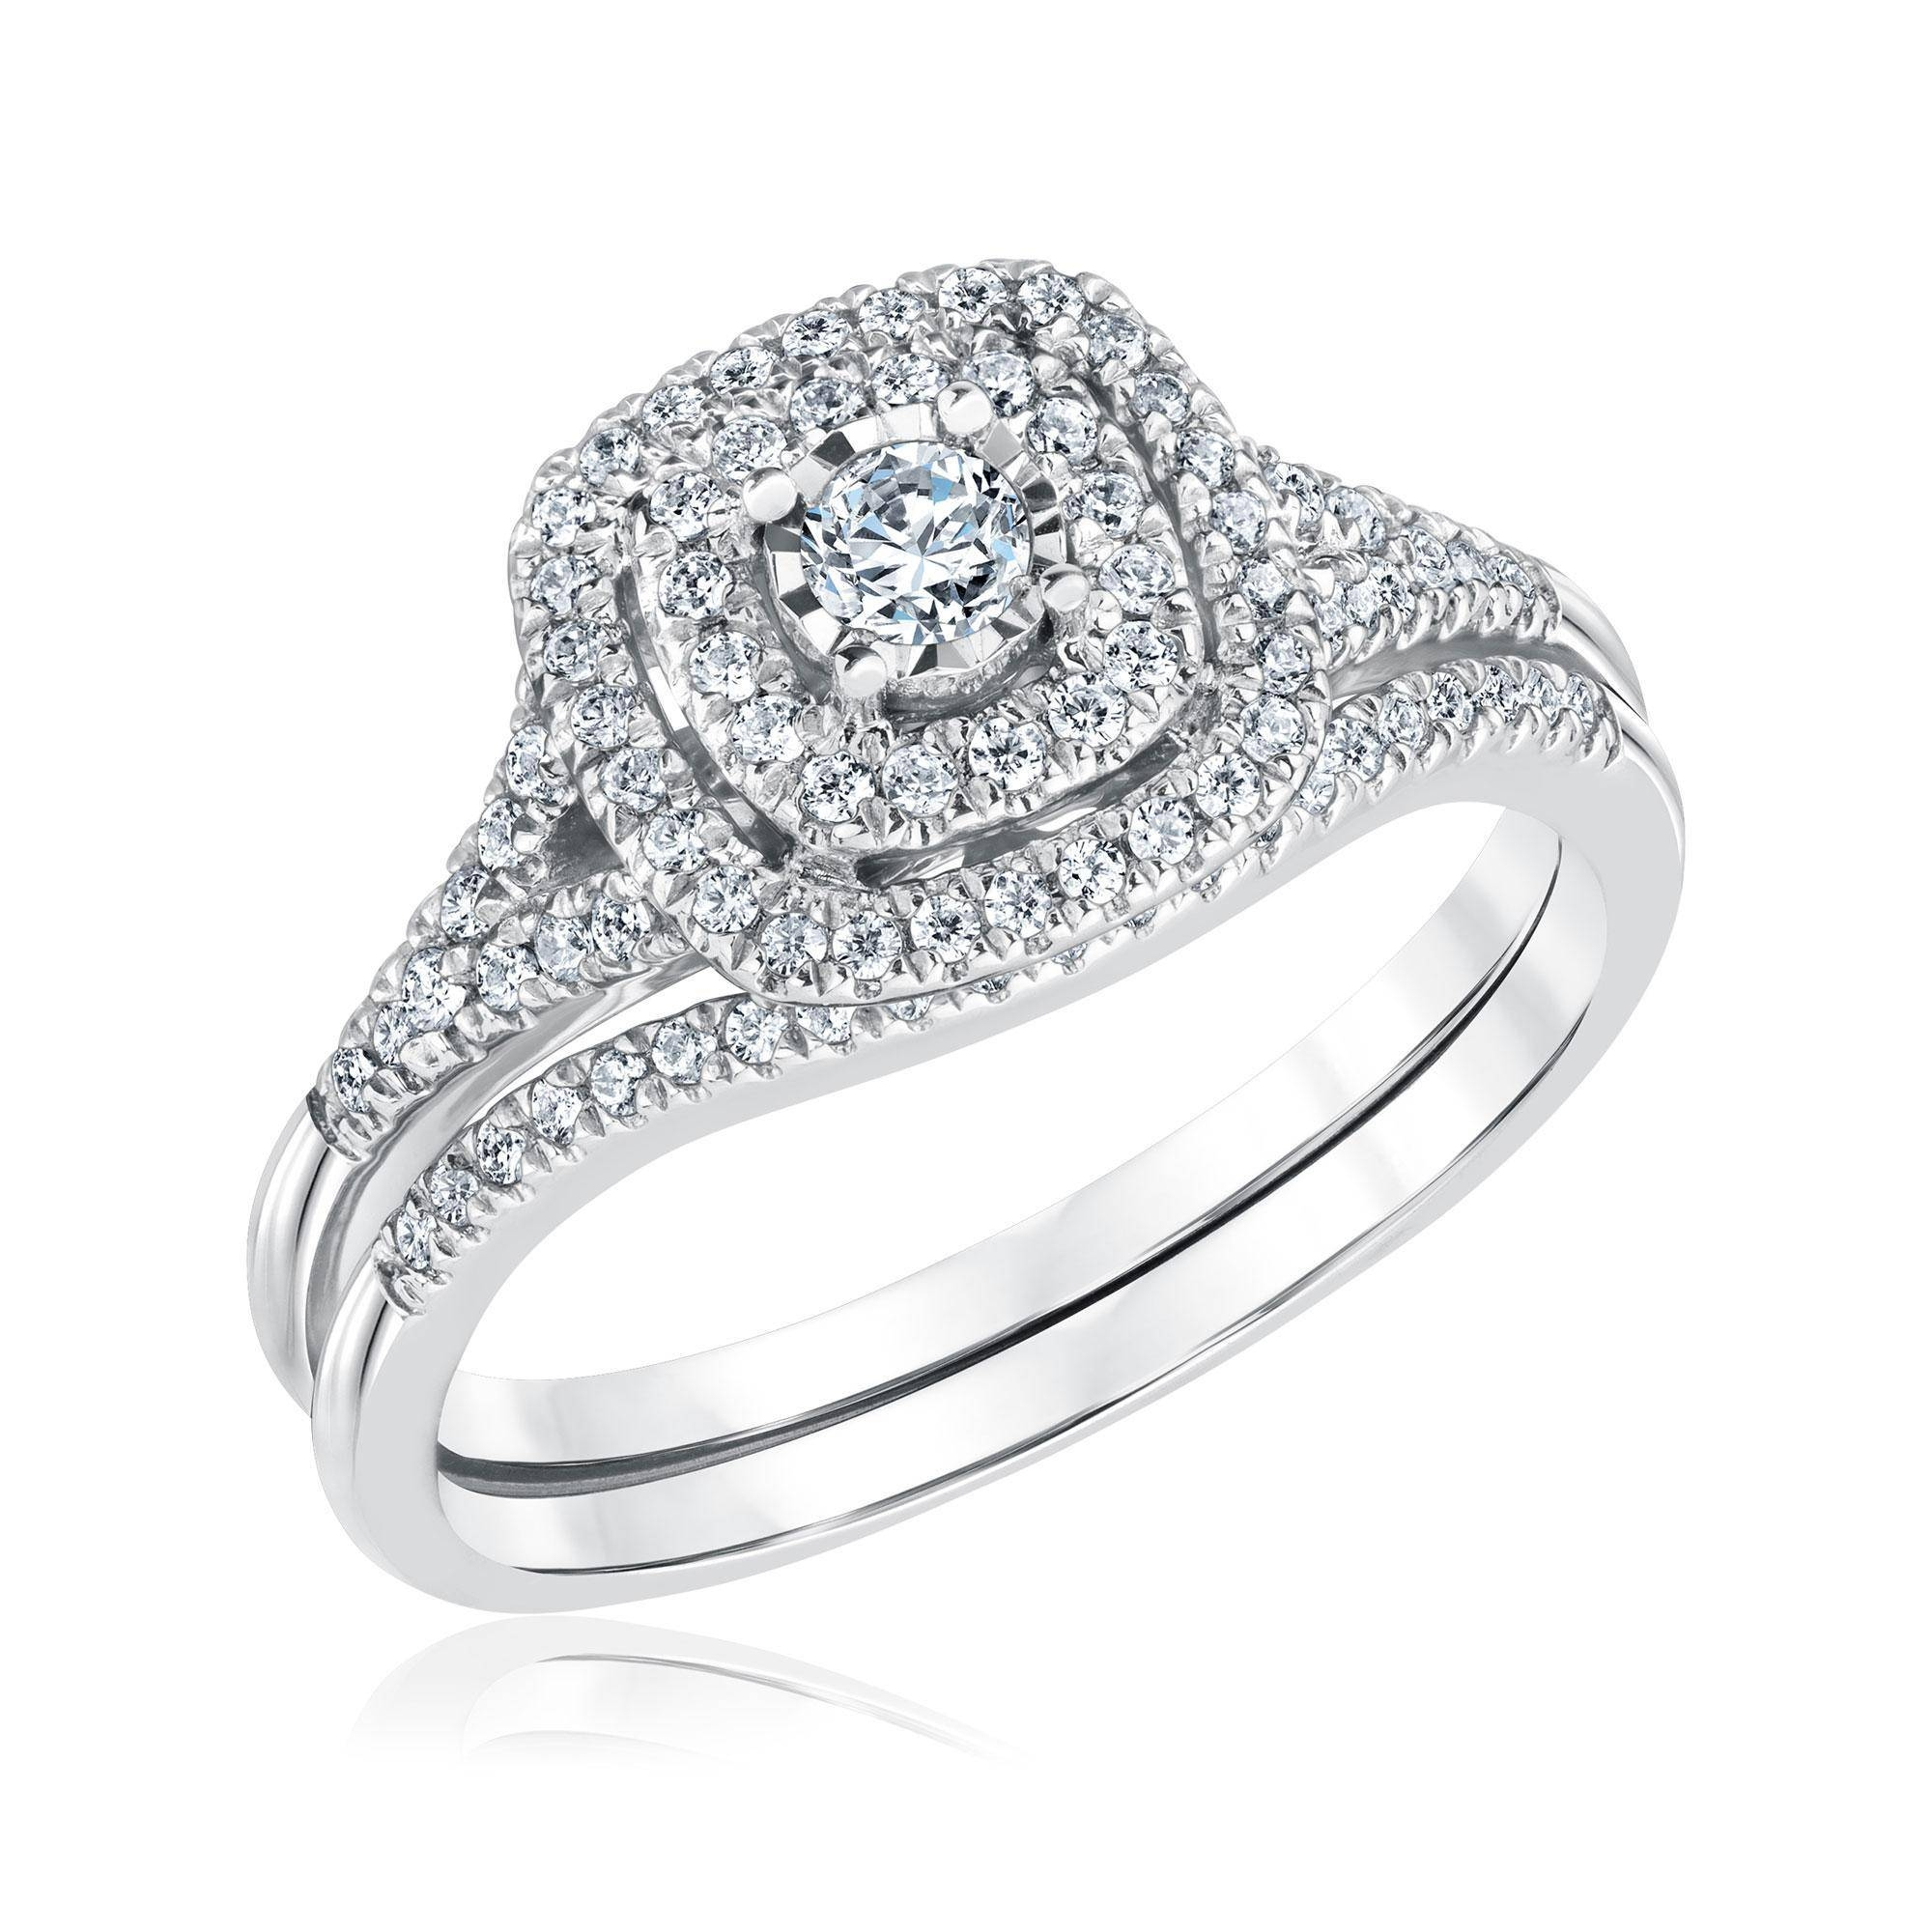 Engagement Rings : Engagement Rings With Wedding Bands Stunning Throughout Wedding Rings With Engagement Ring Sets (View 9 of 15)